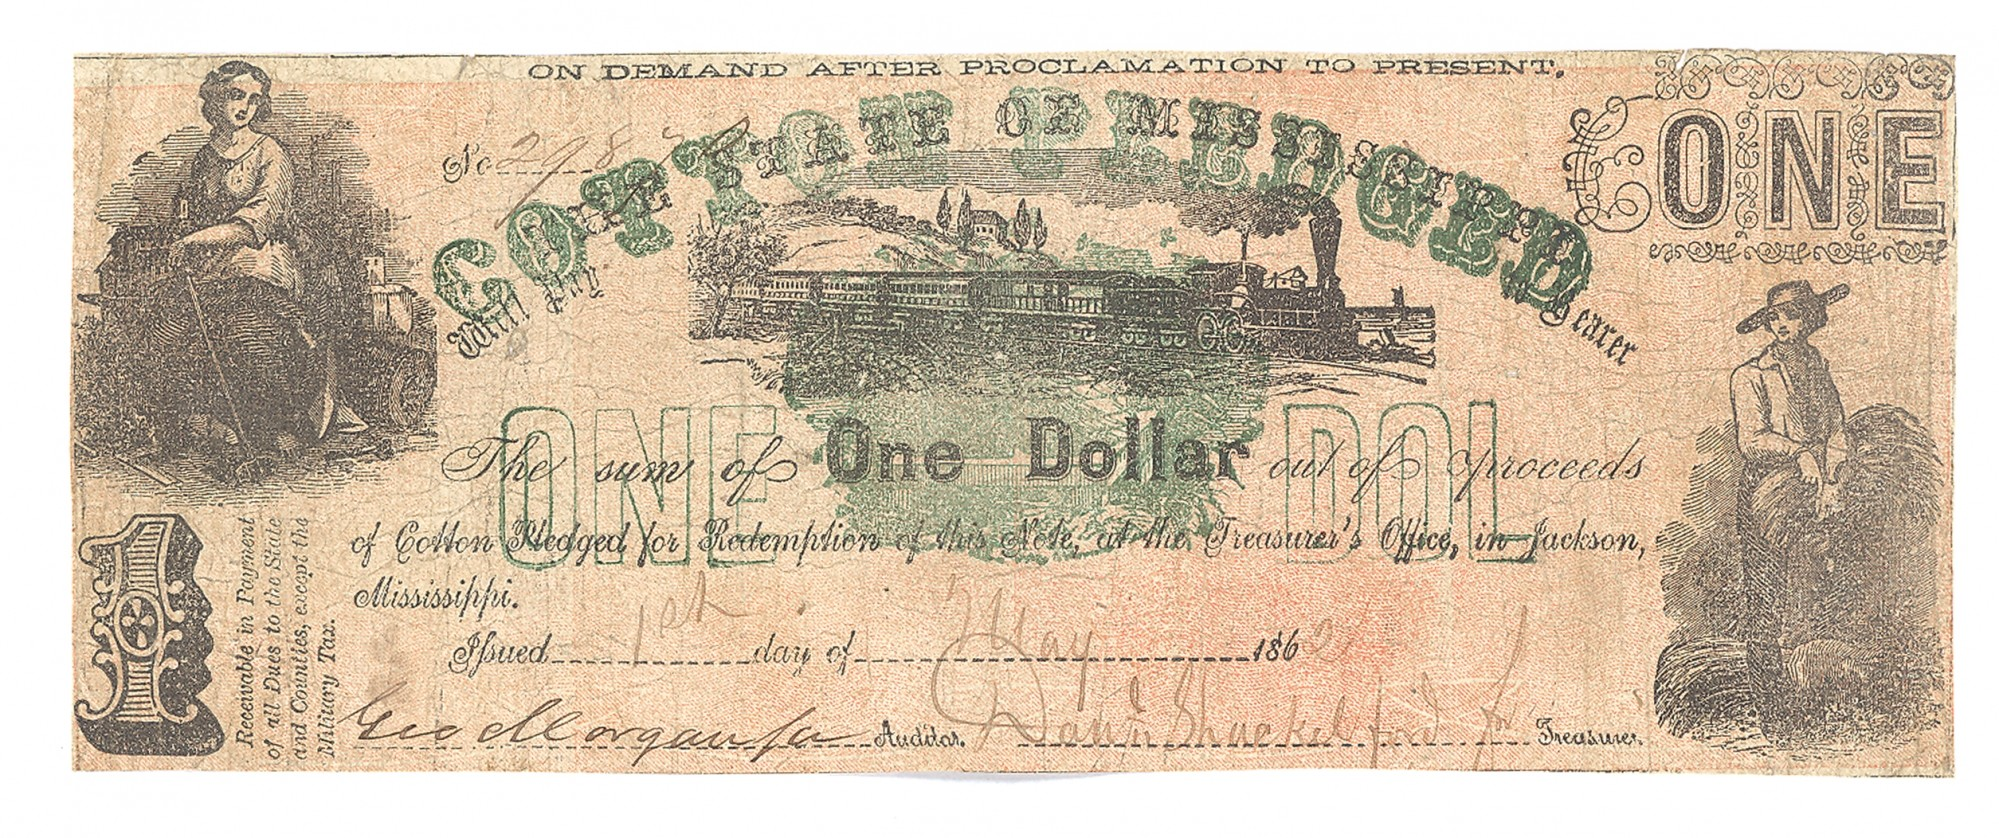 STATE OF MISSISSIPPI COTTON PLEDGED, MISSISSIPPI, $1 NOTE